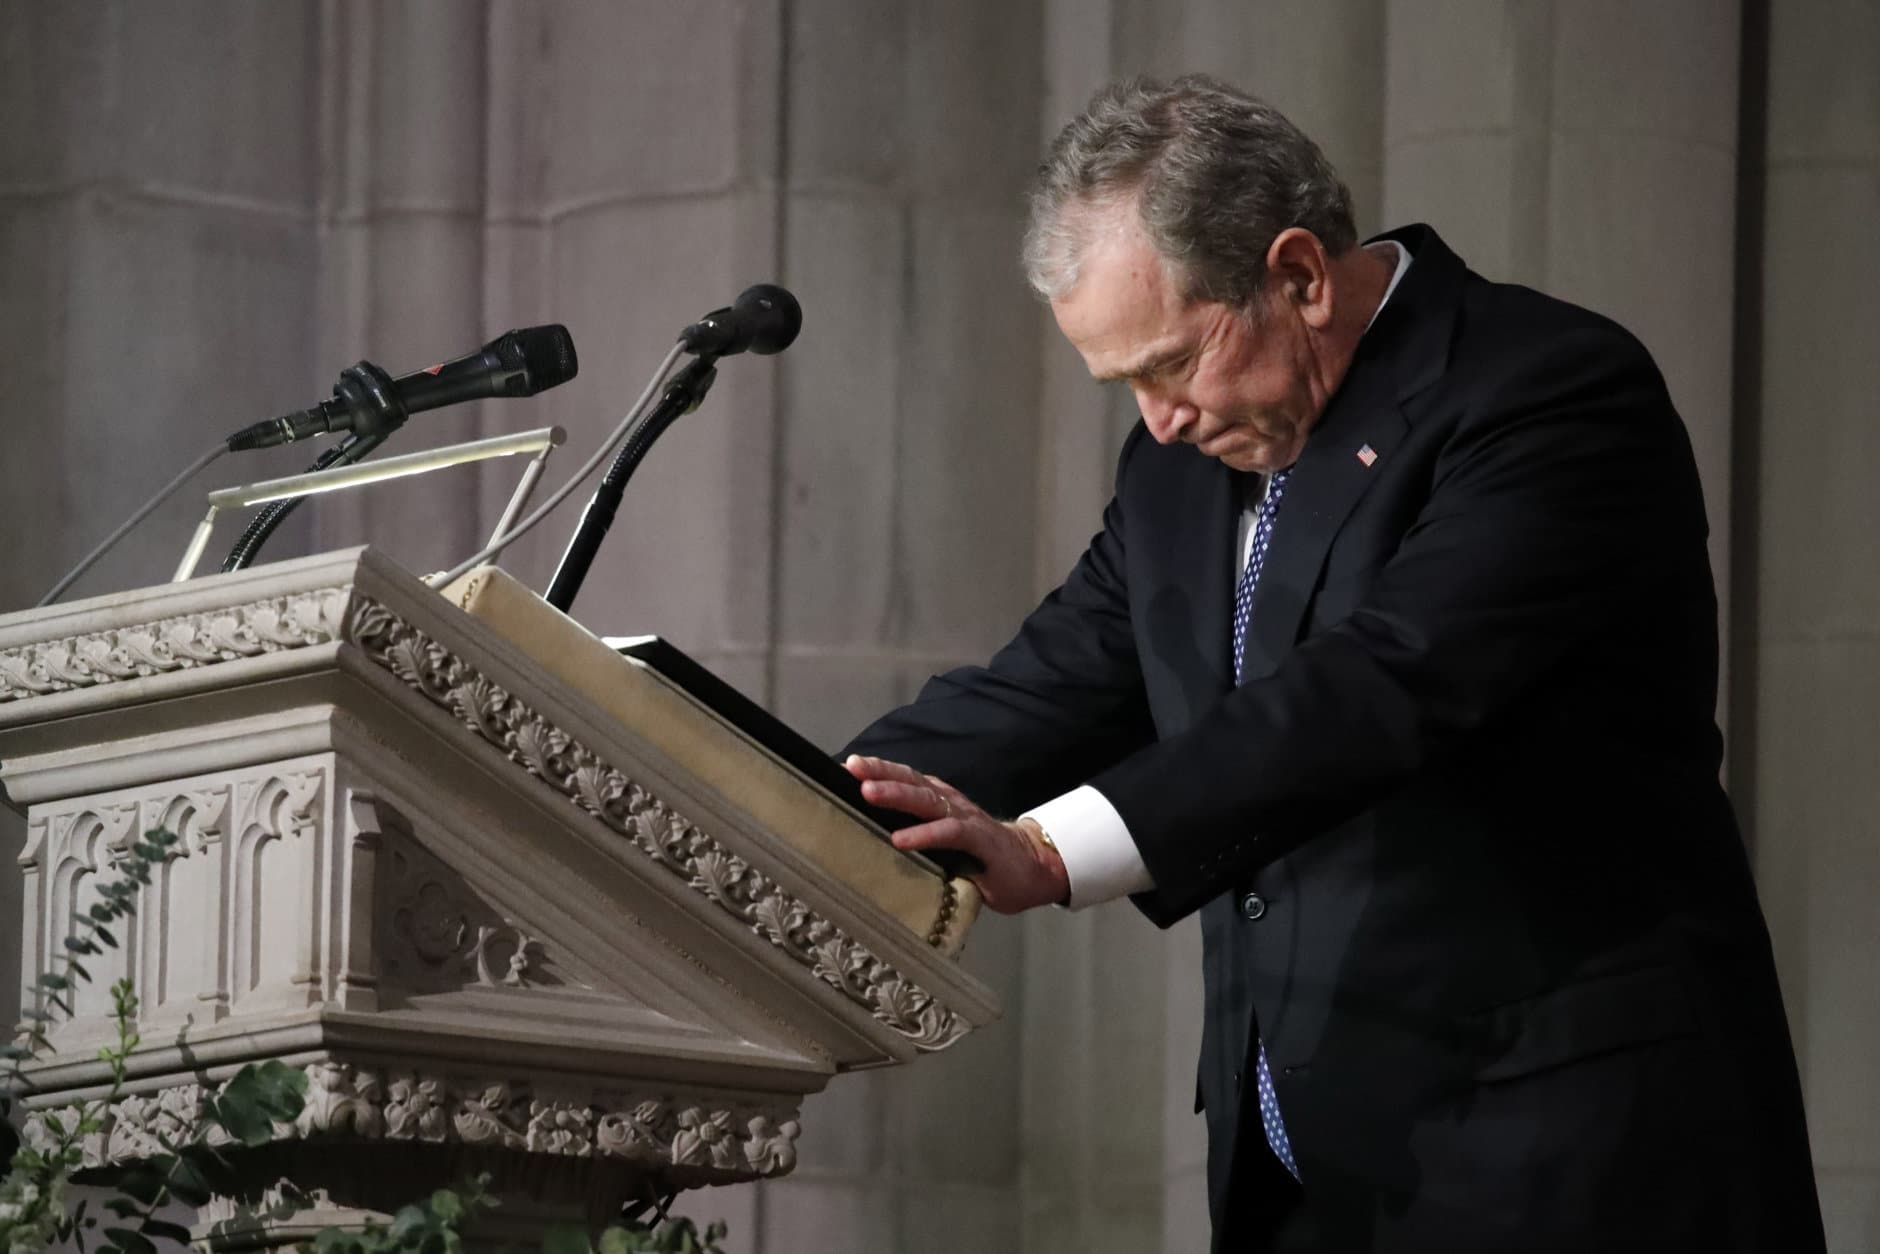 Former President George W. Bush speaks at the State Funeral for his father, former President George H.W. Bush, at the National Cathedral, Wednesday, Dec. 5, 2018, in Washington.(AP Photo/Alex Brandon, Pool)